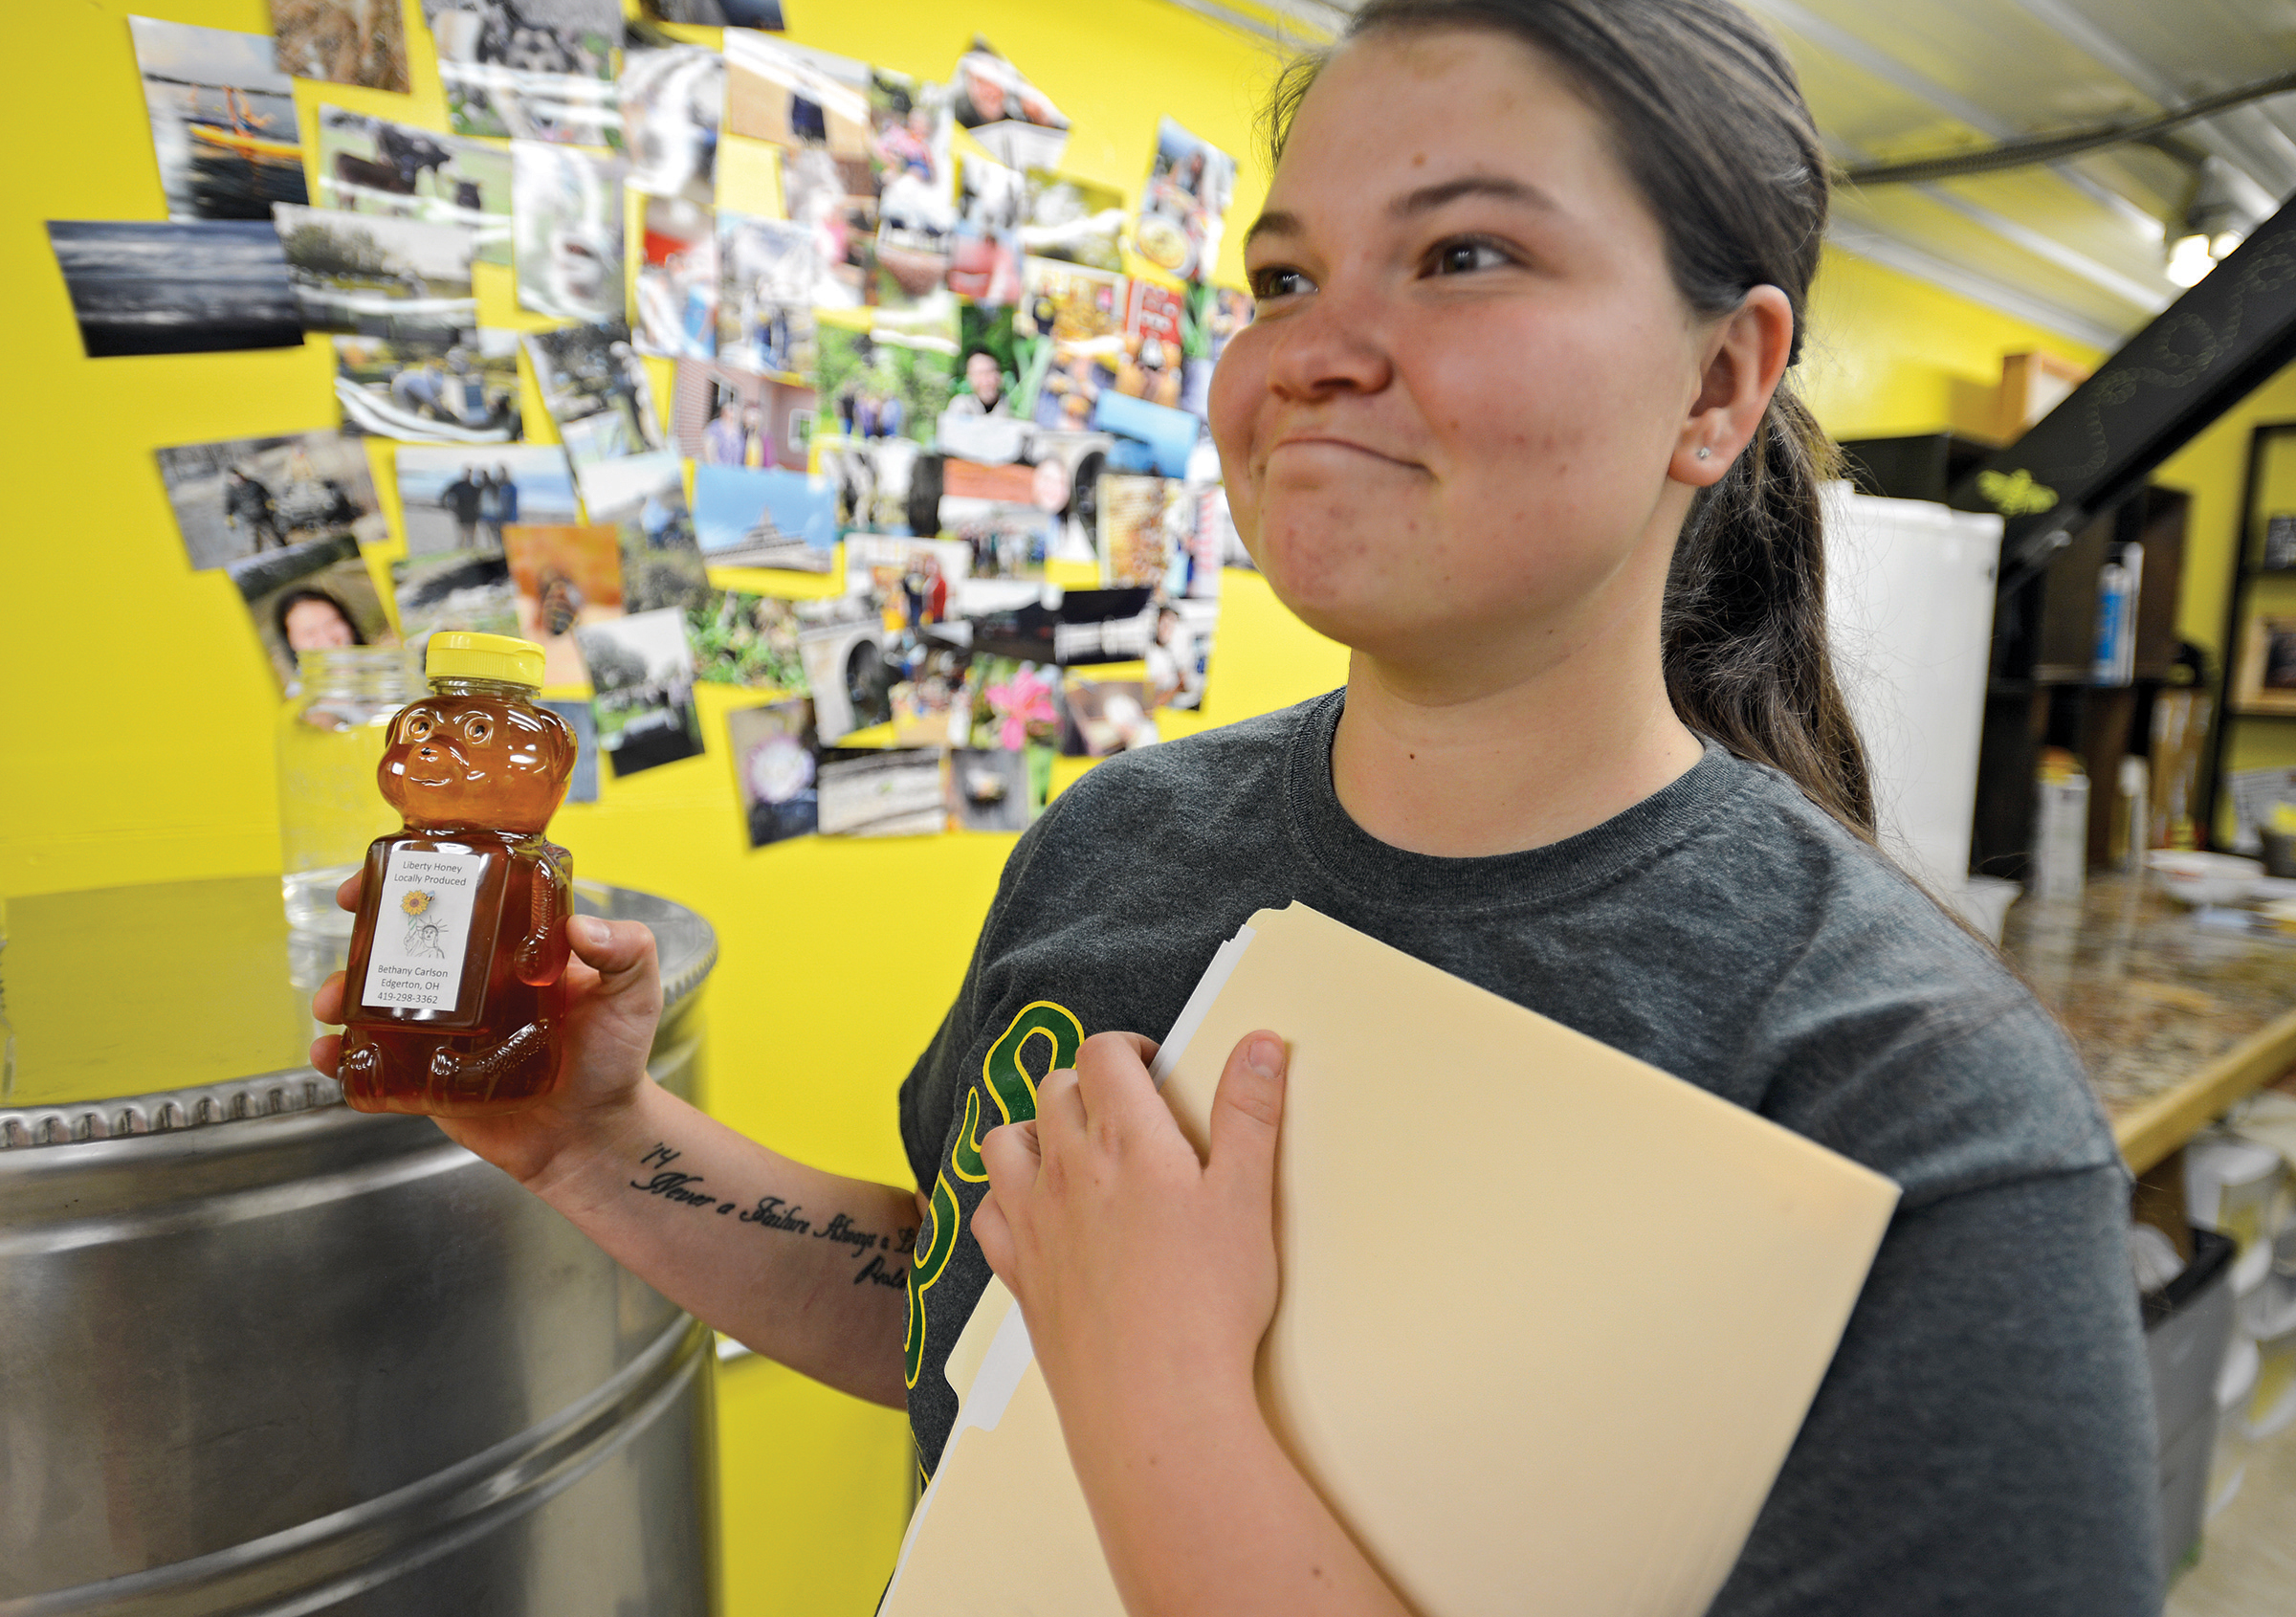 OFB_beekeeper_5859: Apiarist Bethany Carlson, 20, holds a jar of her Liberty Honey, which she produces and sells the hives she maintains on her family's homestead in Edgerton, Ohio, Thursday, June 30, 2016. (Photo by Peggy Turbett)